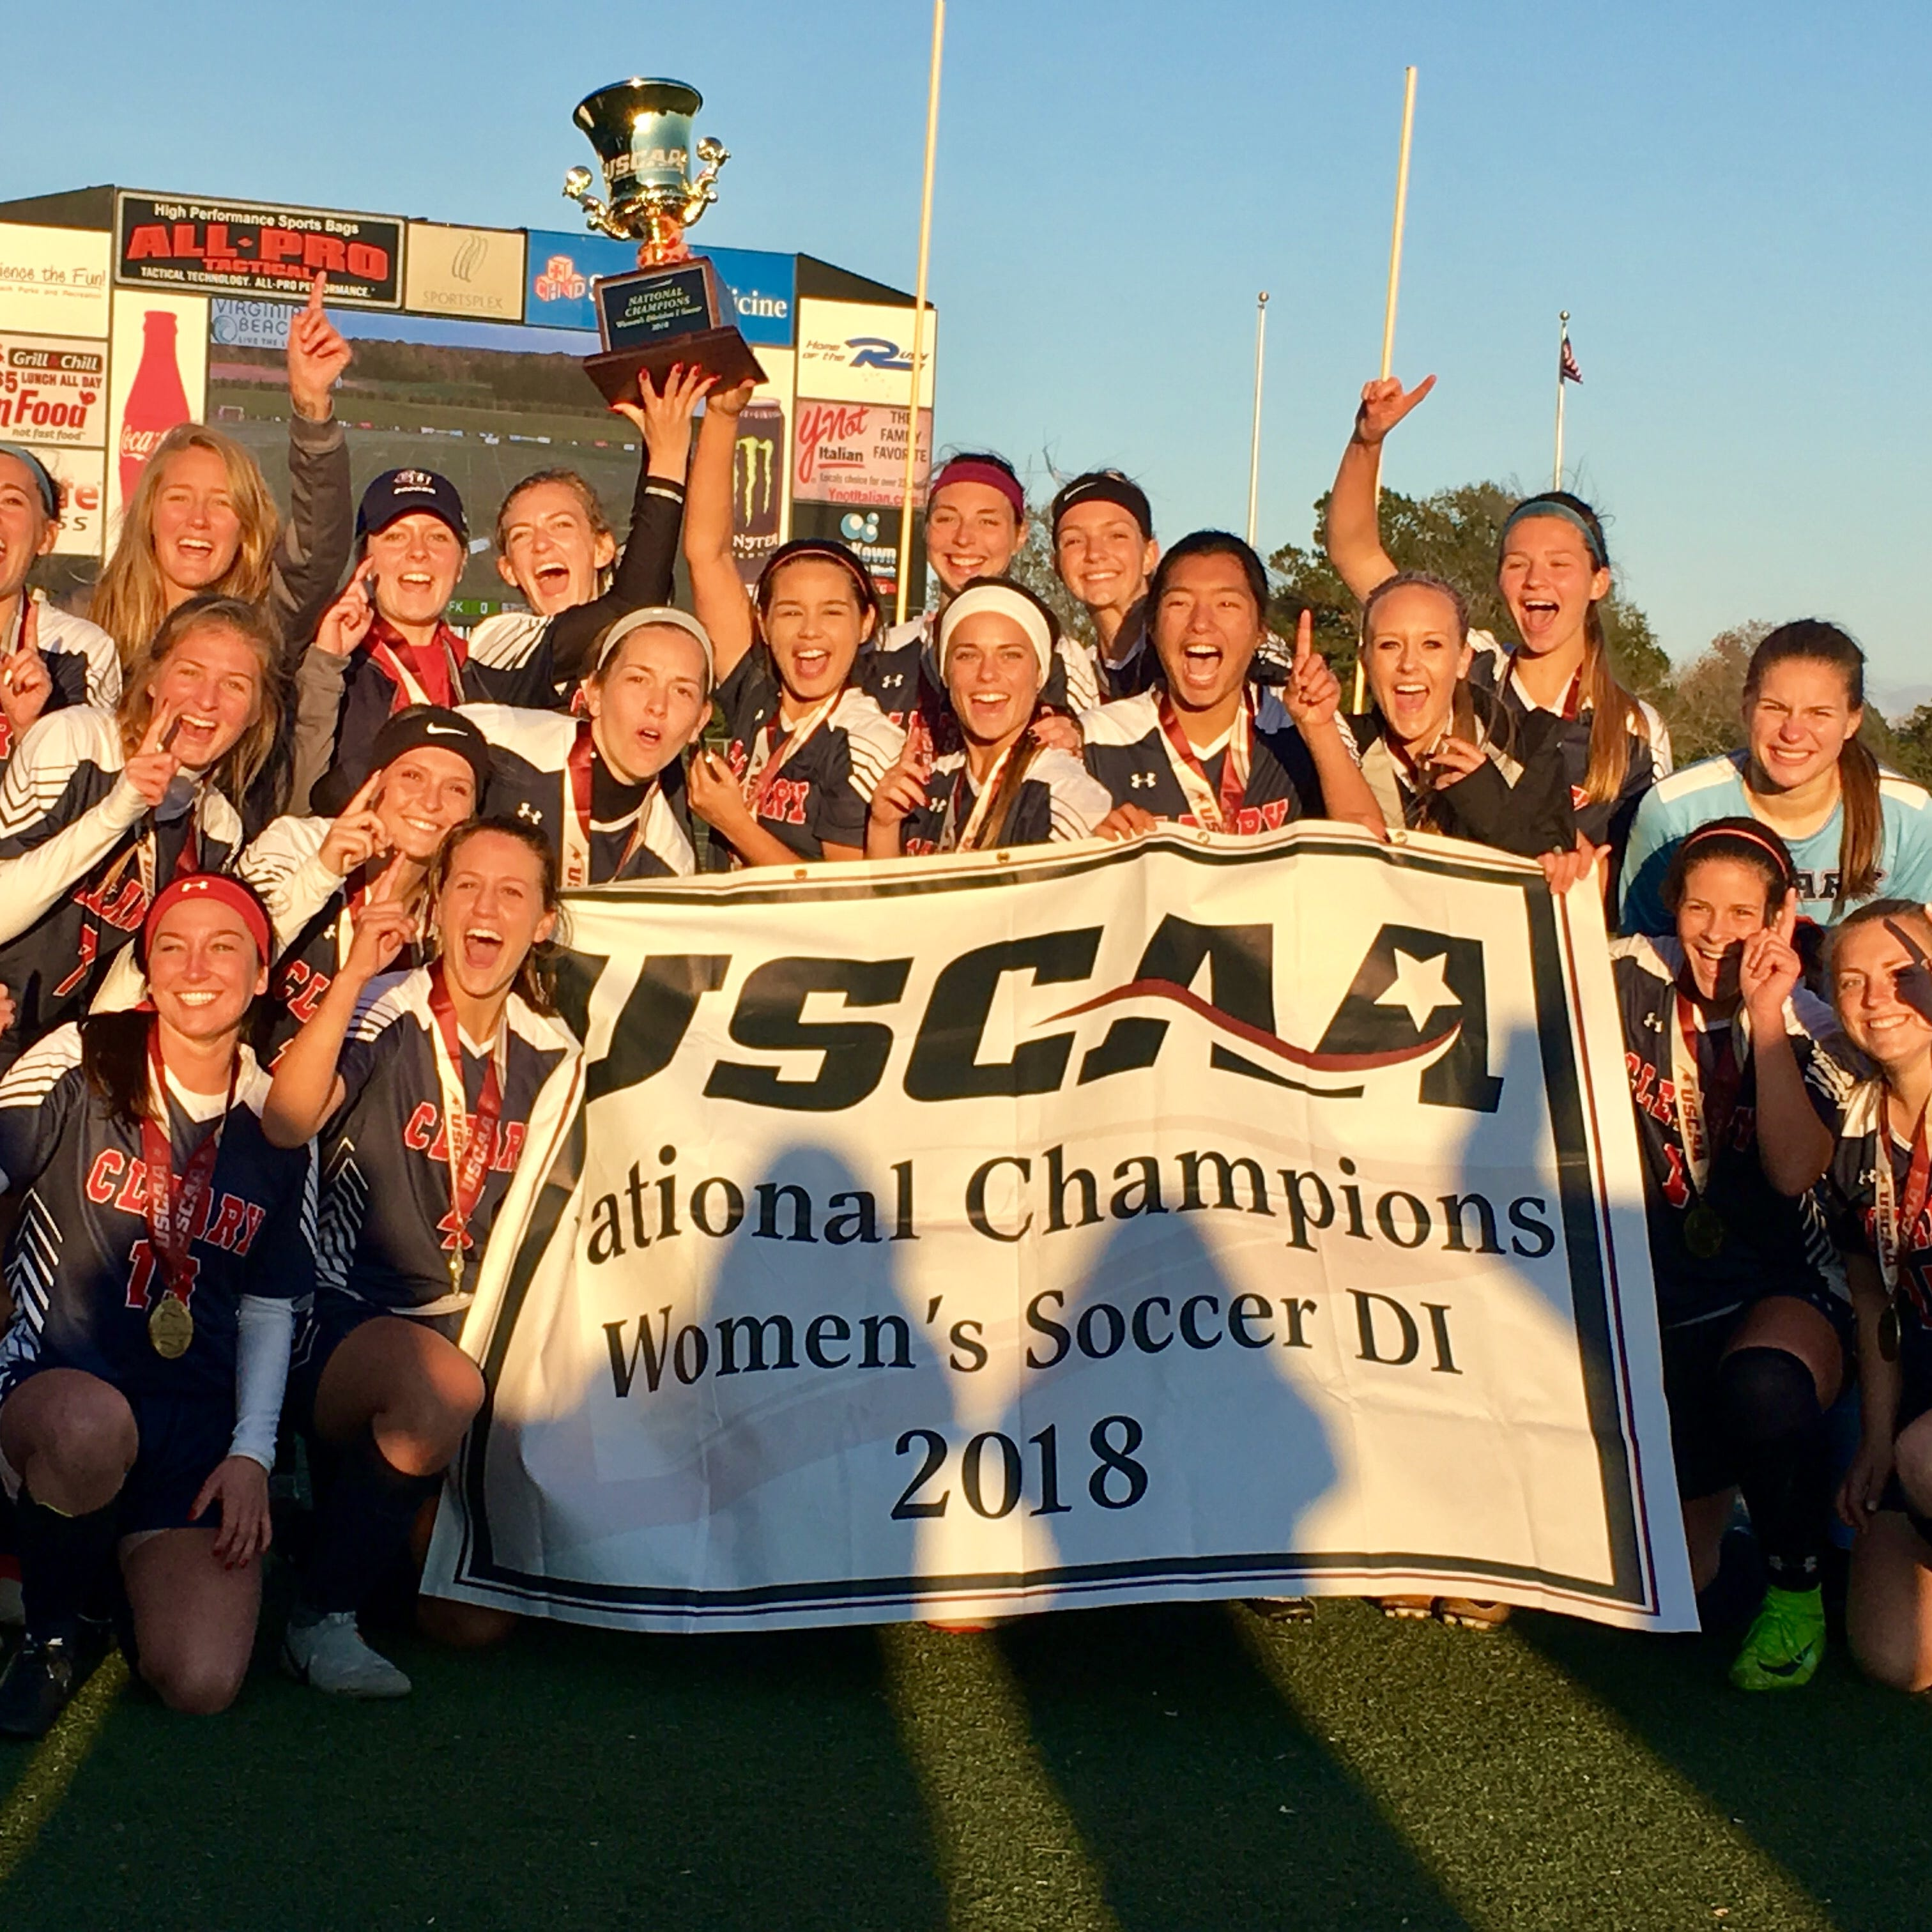 Cleary University women's soccer team wins national championship